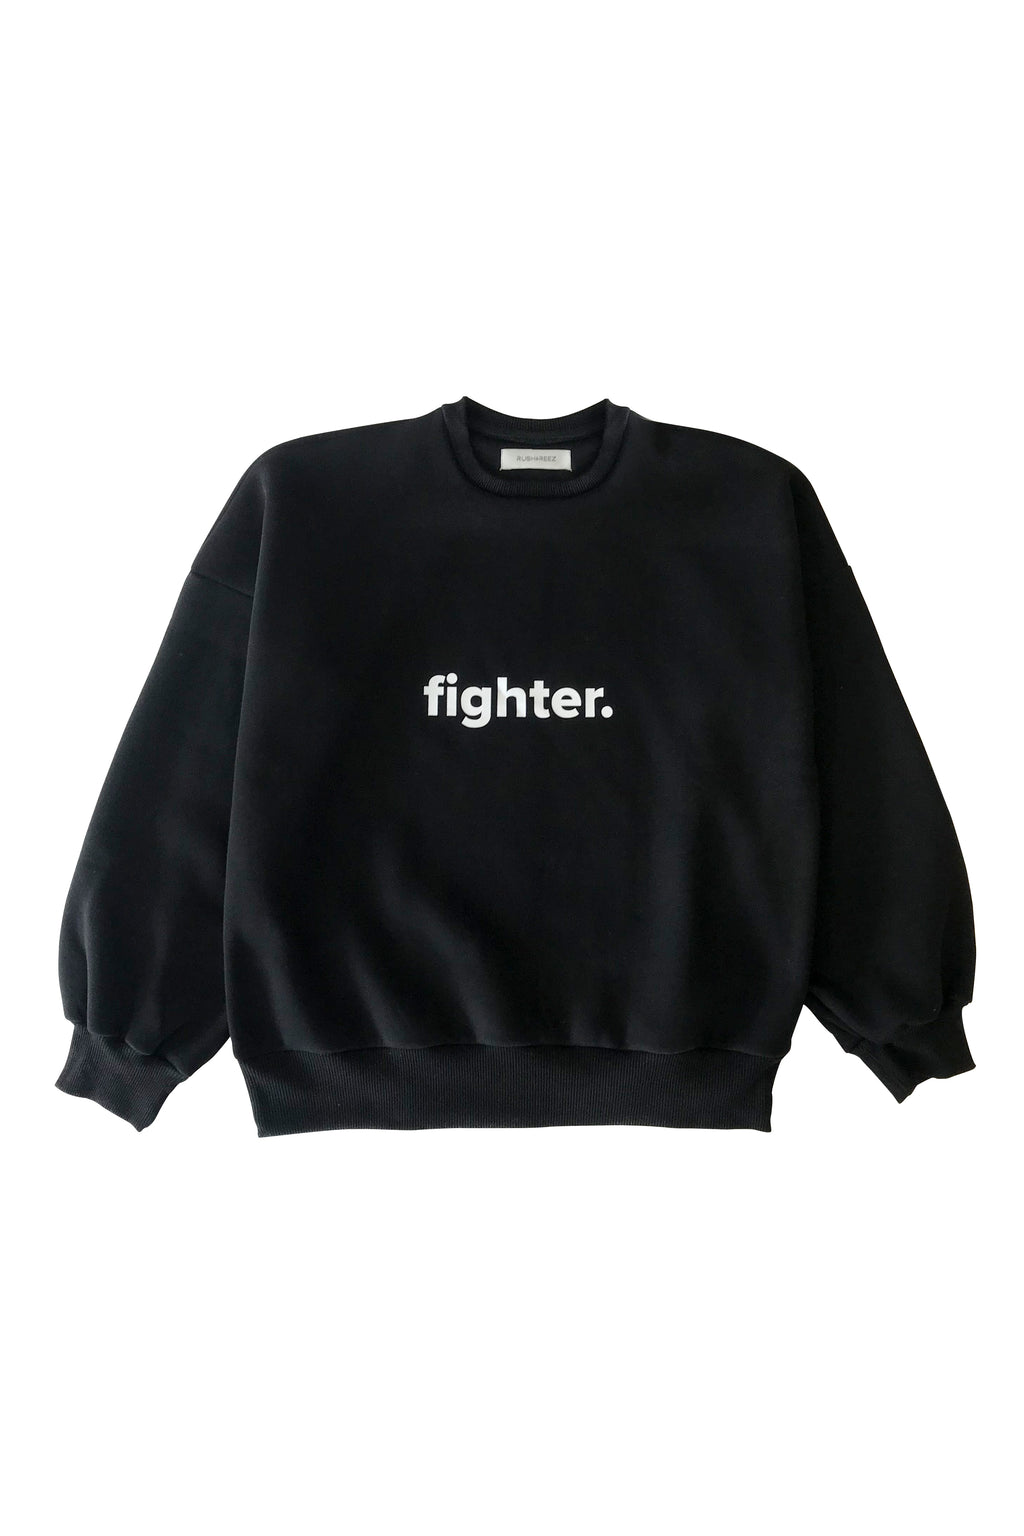 Black & White Fighter Sweatshirt - Waist Length